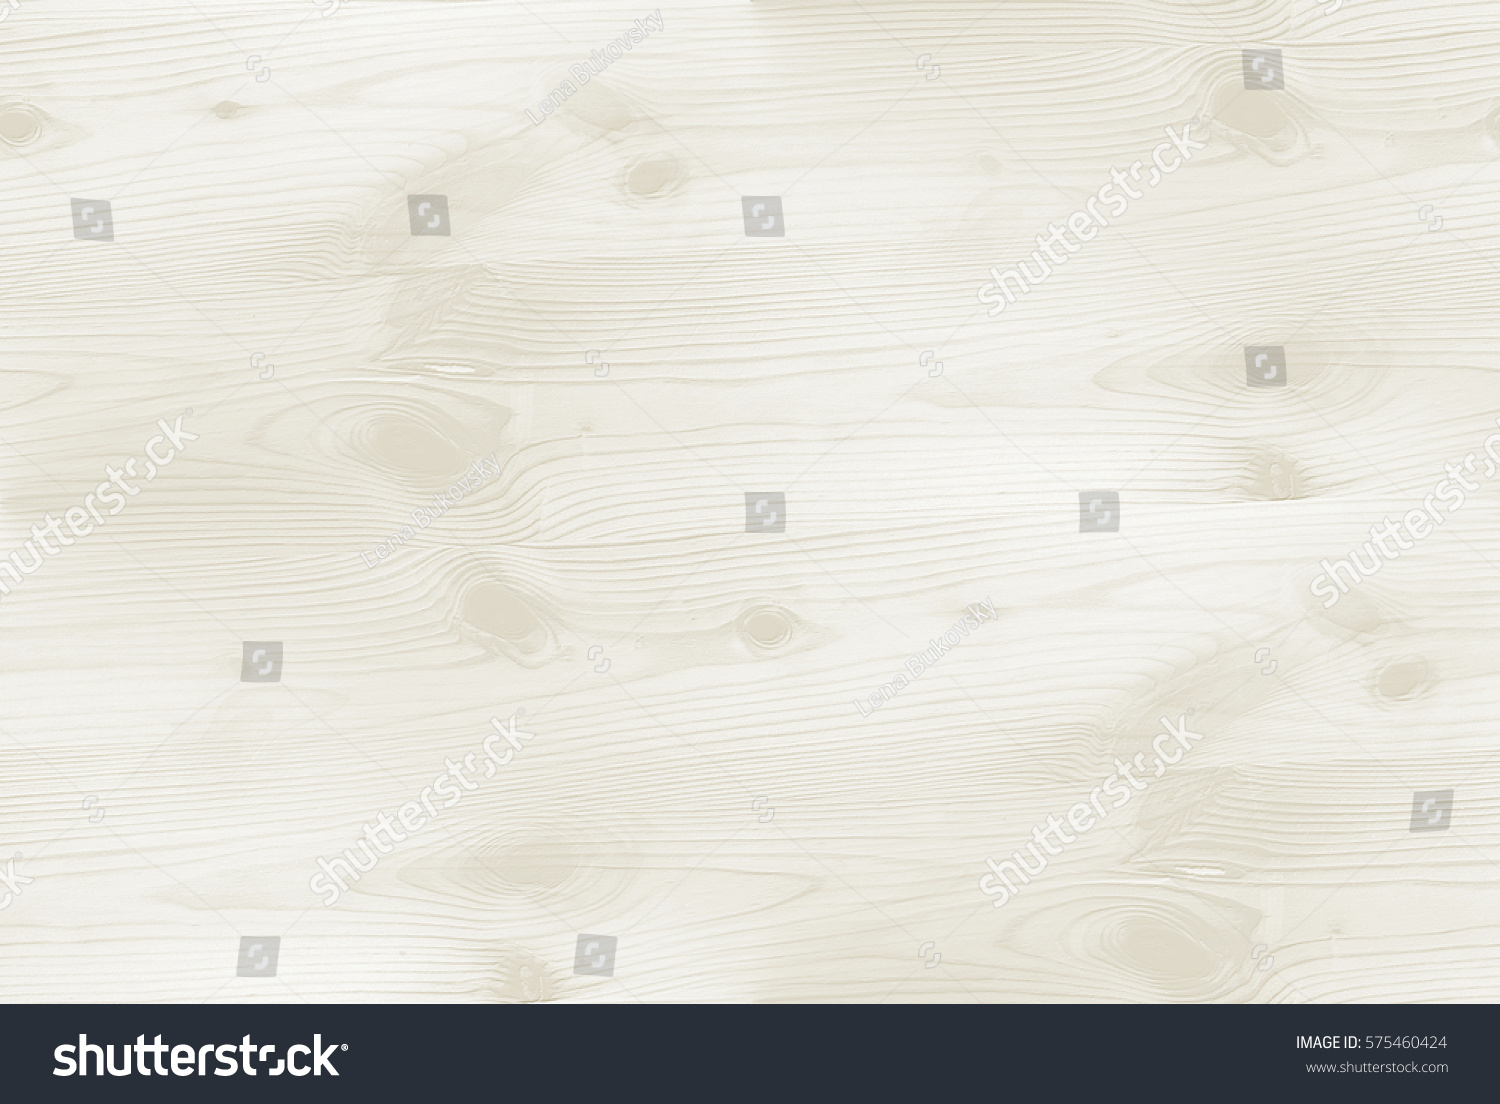 White Wooden Texture Seamless Tile Stock Photo Edit Now 575460424